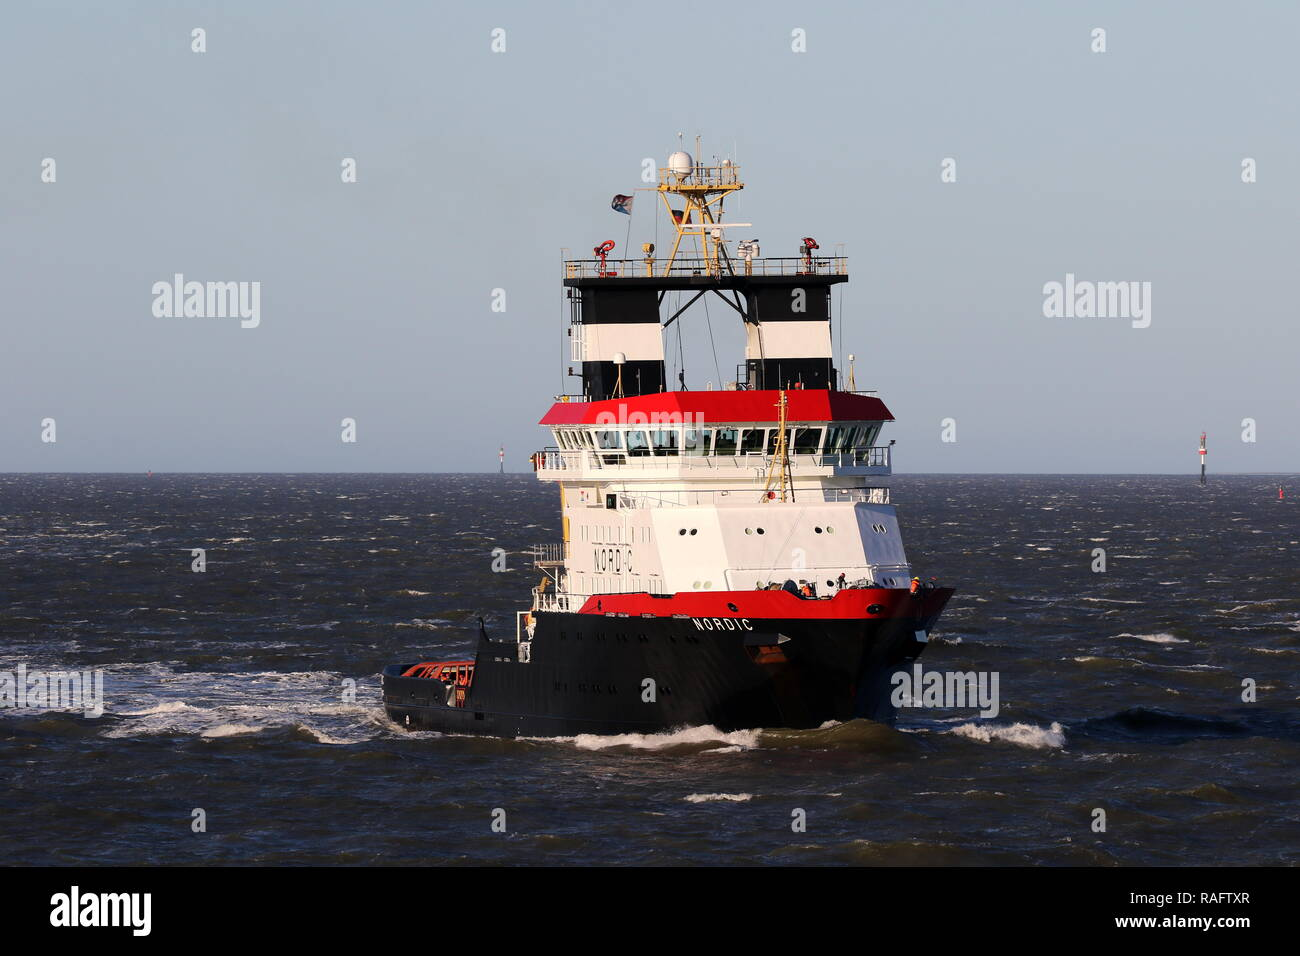 Emergency Tow Vessel Stock Photos & Emergency Tow Vessel Stock